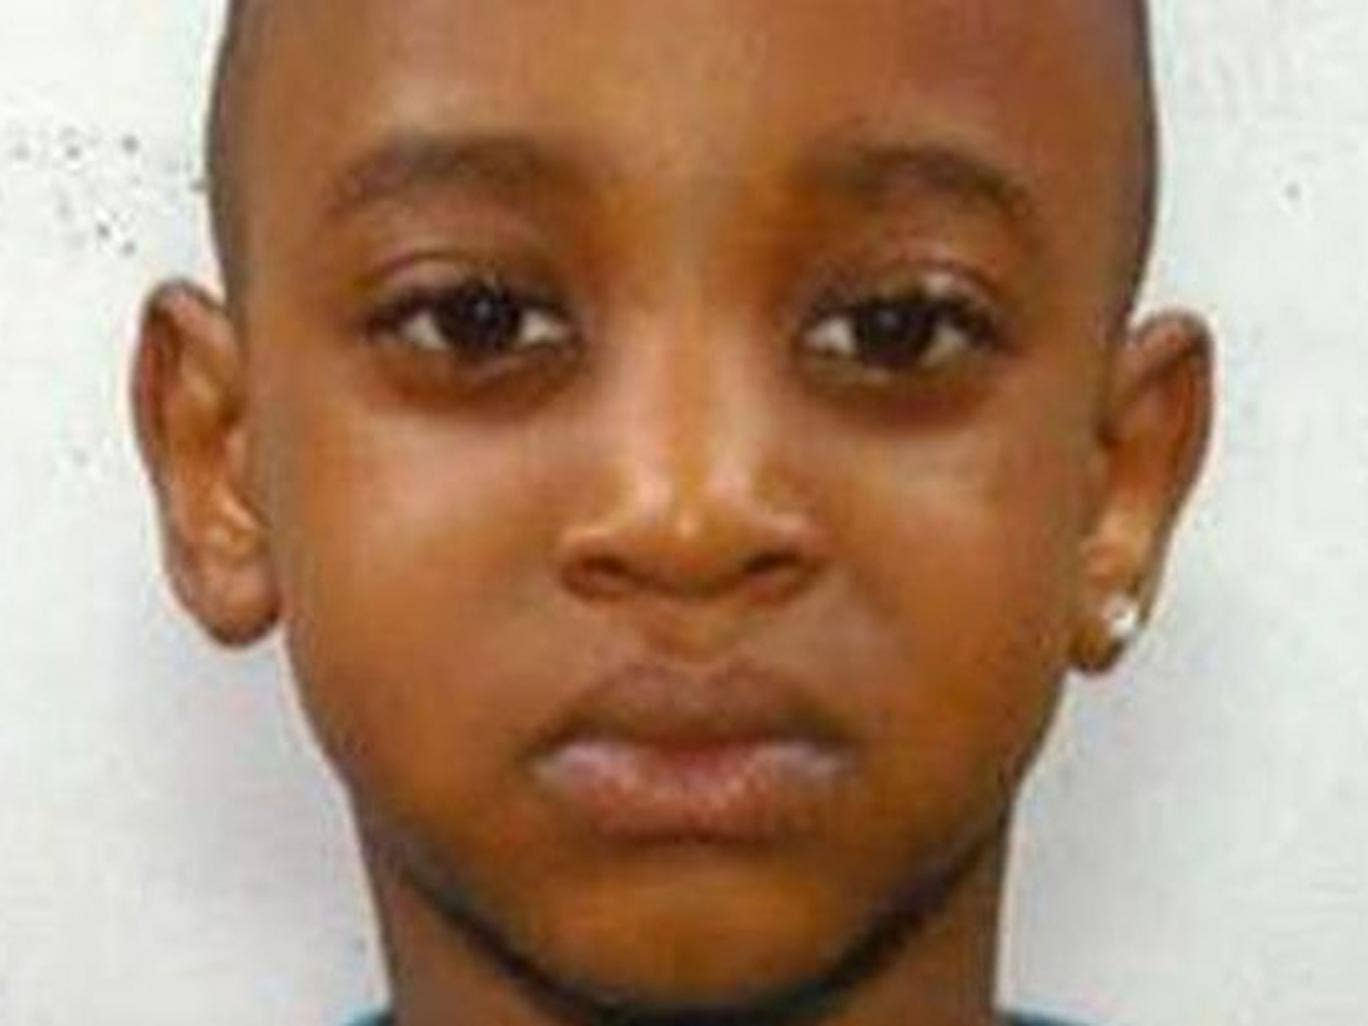 Daequan George went missing in Tottenham last night and was last seen playing in a playground